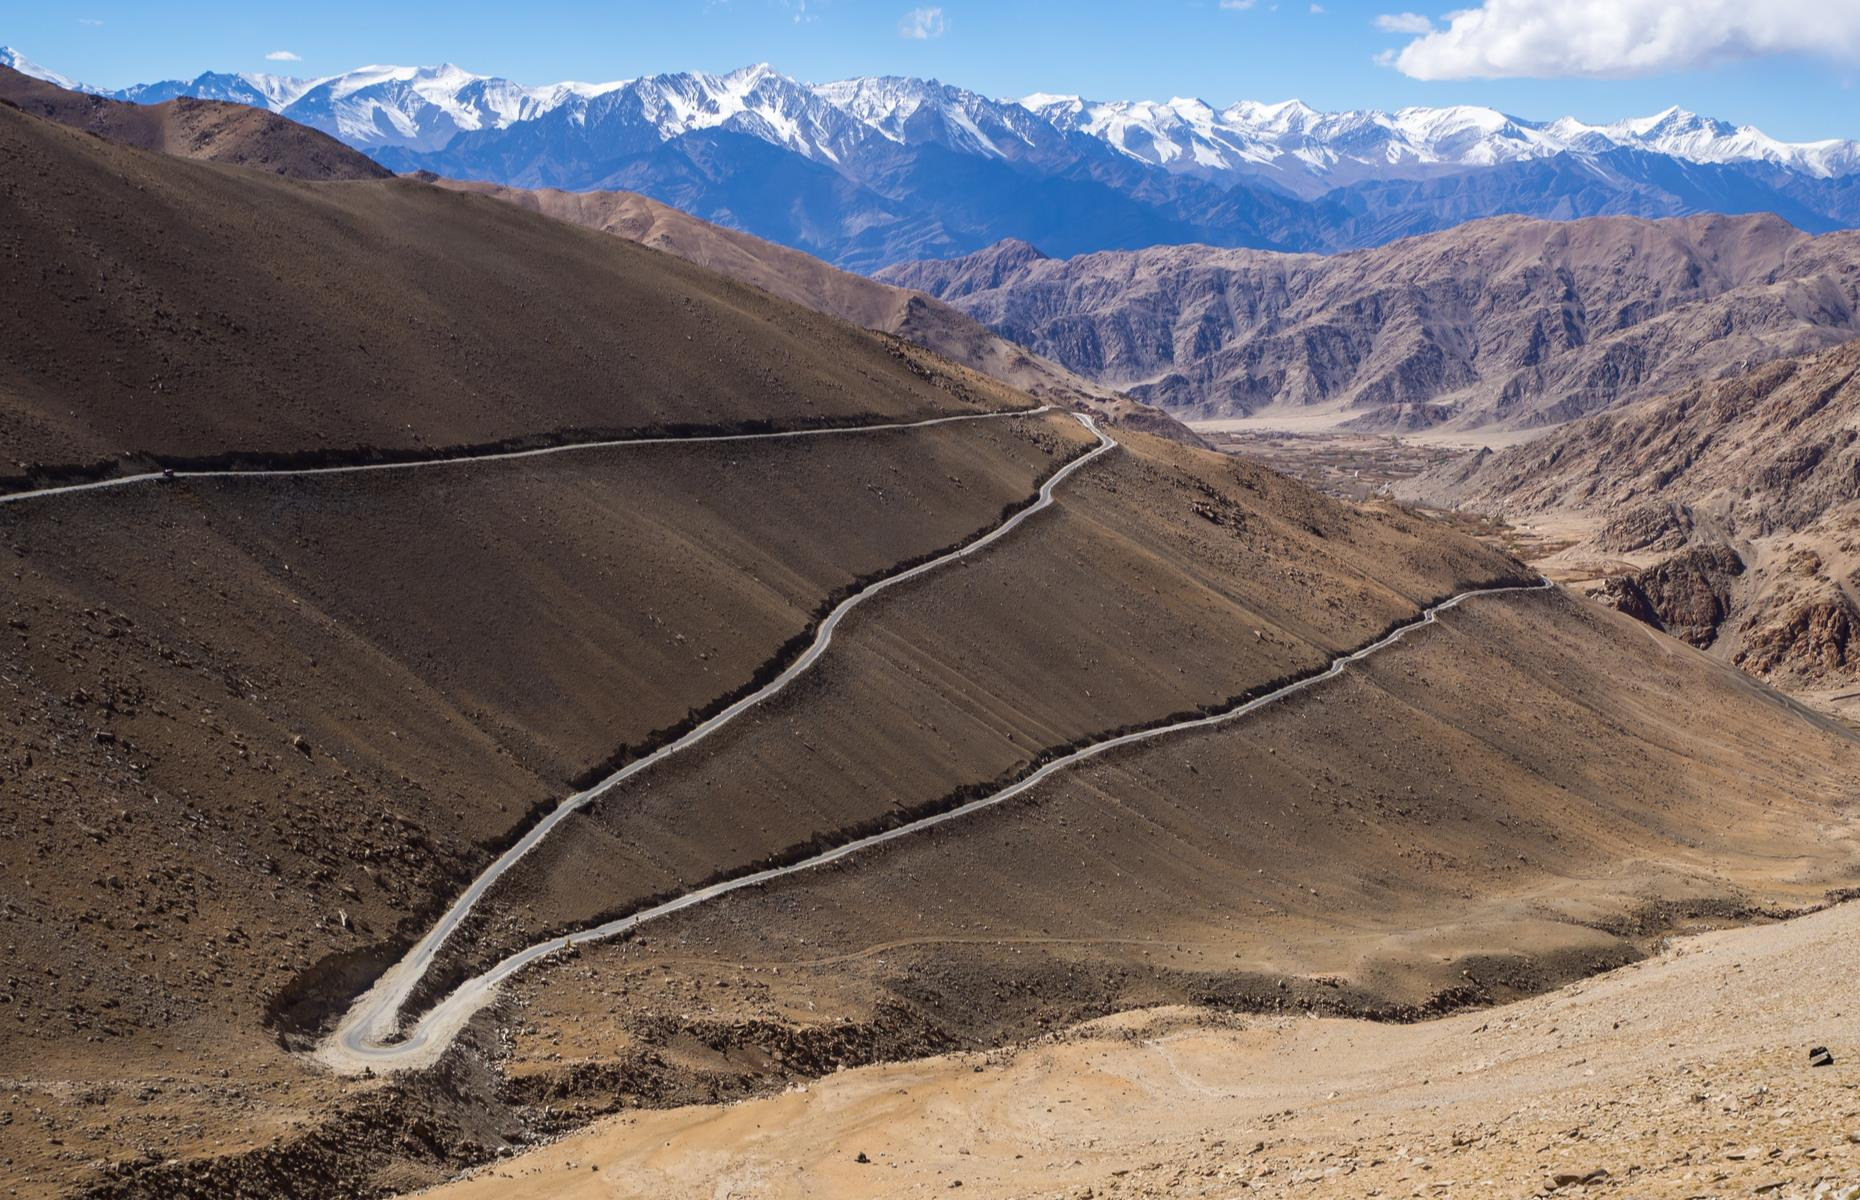 Slide 30 of 44: The Khardung La or the Khardung Pass was built in 1976 on the Ladakh Range to the north of Leh in the Indian state of Jammu and Kashmir. With a height of 17,582 feet (5,358m), travelers plying this lofty road that traverses past some startling Himalayan scenery can suffer from altitude sickness. With sheer drops, numerous hairpin turns and extreme weather to contend with too, this is a road to approach with caution. It's closed from October to May due to dangerous weather conditions.